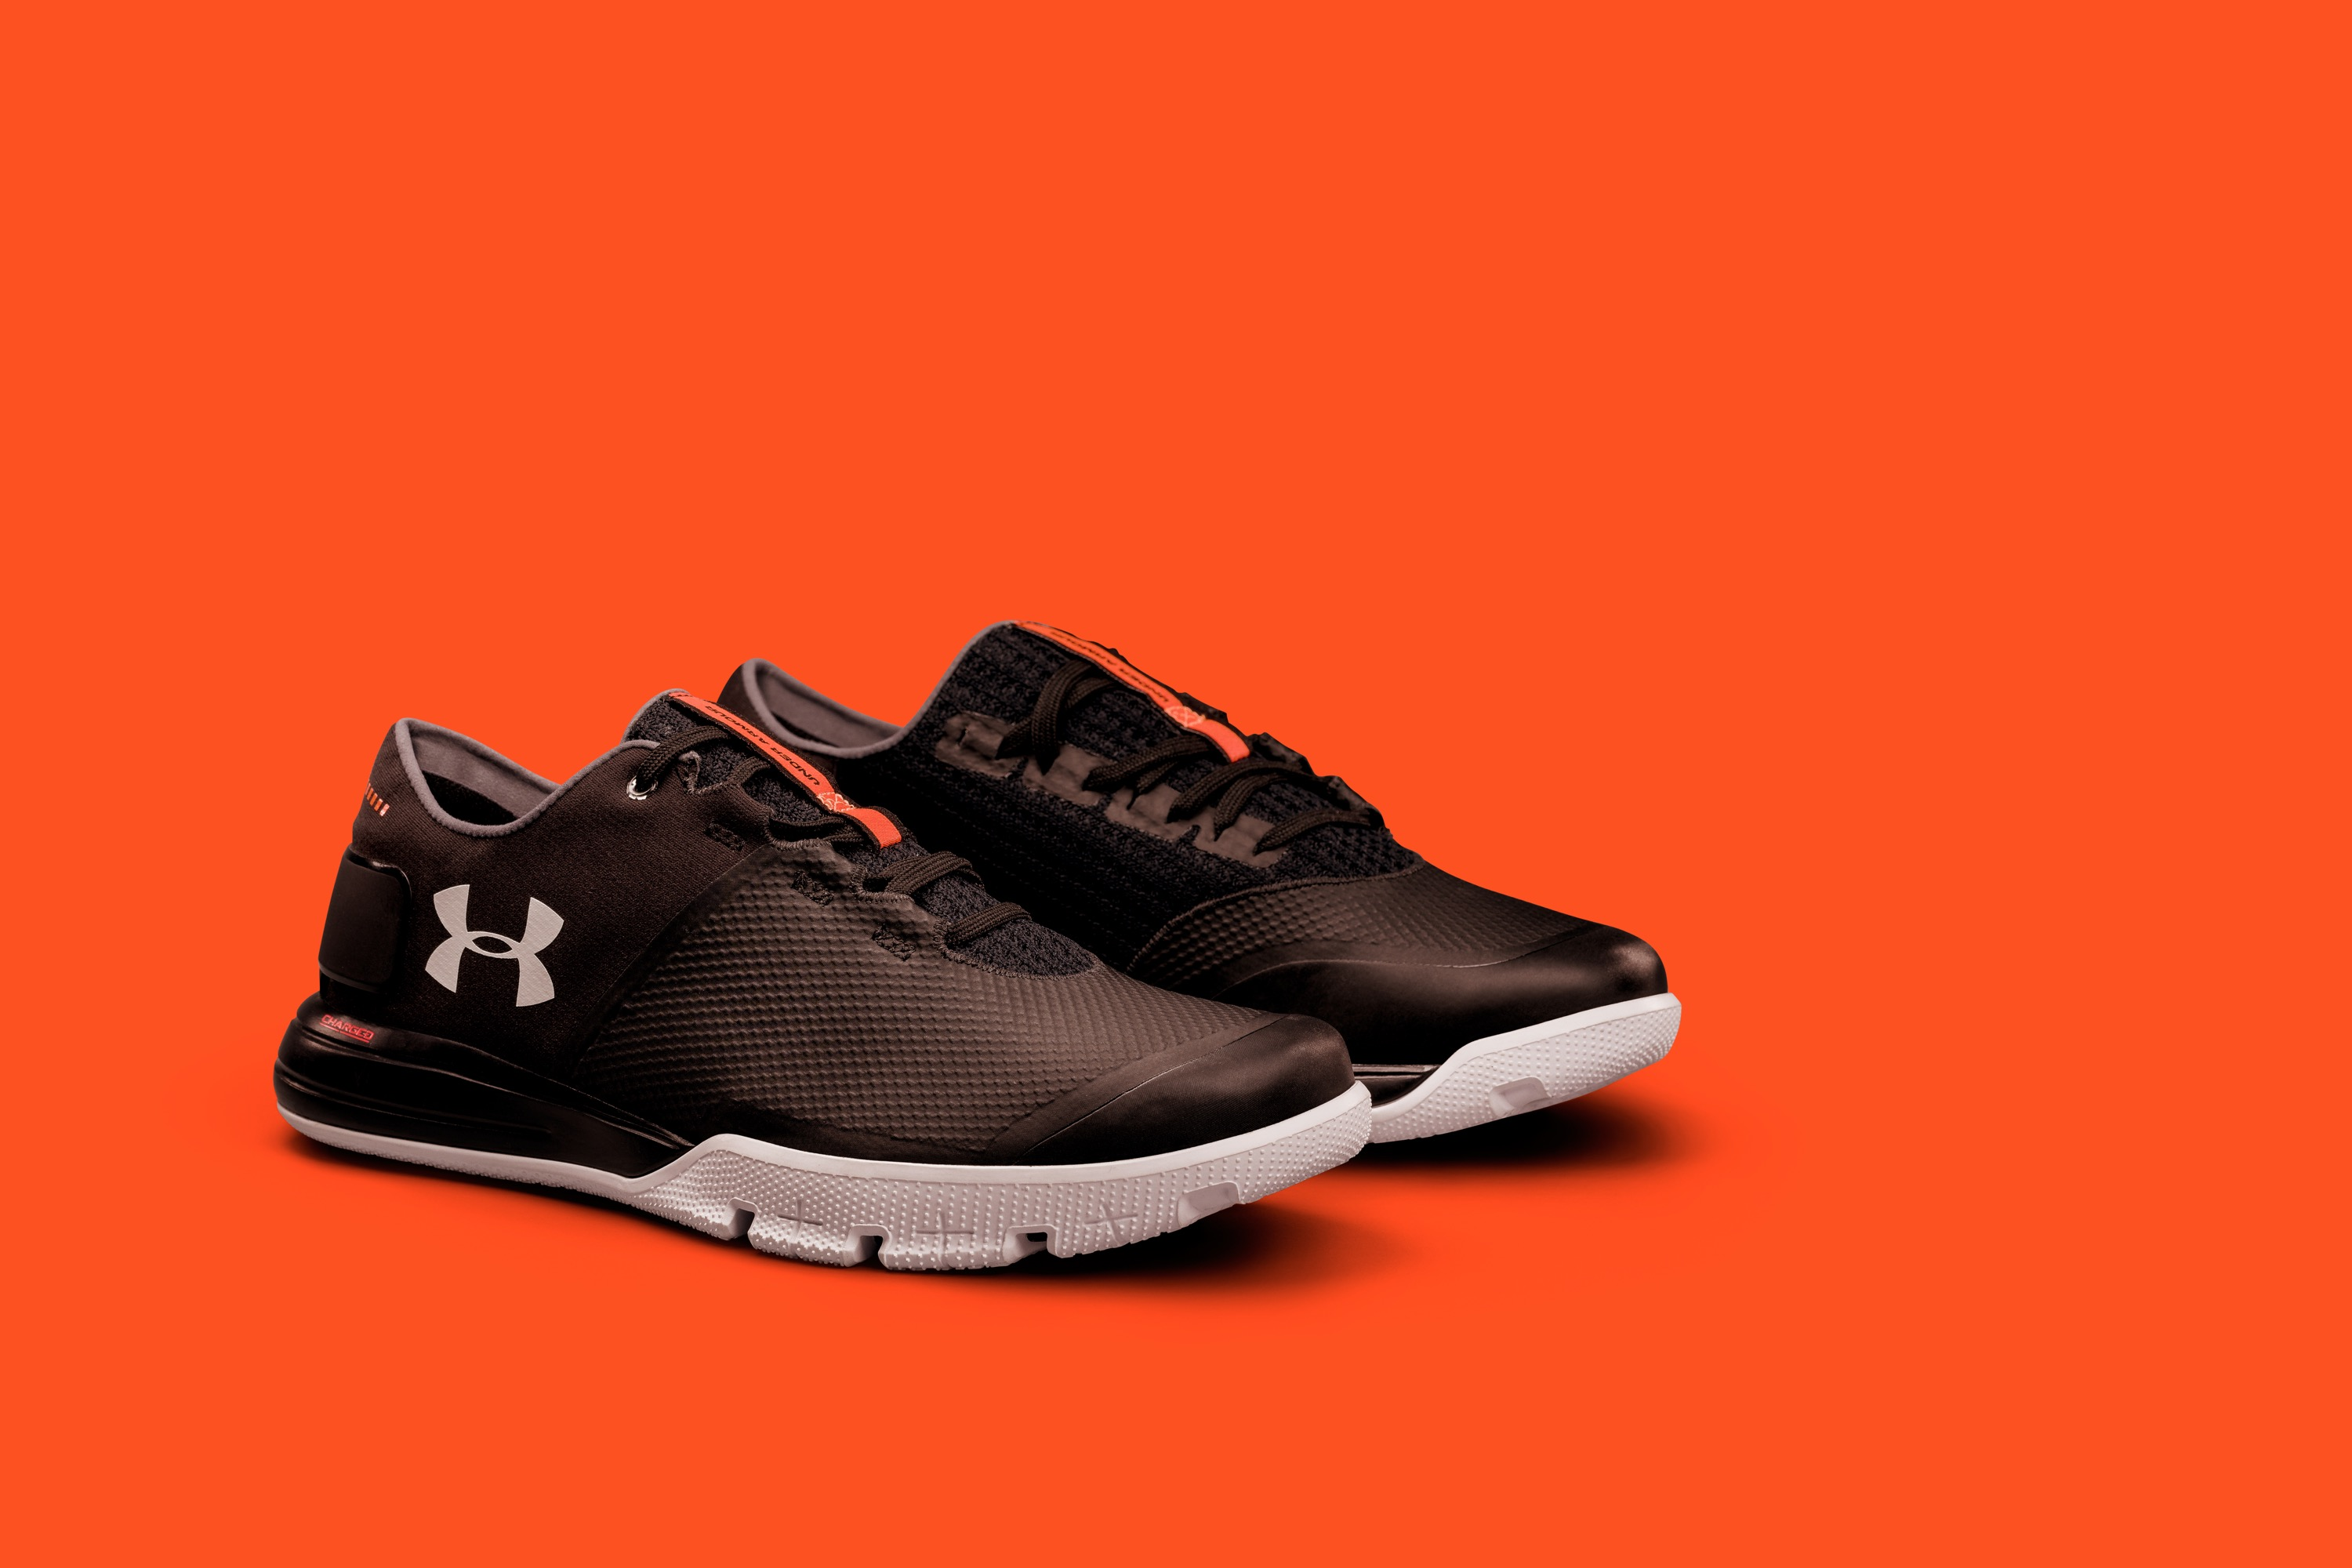 Under Armour Stock Suffered